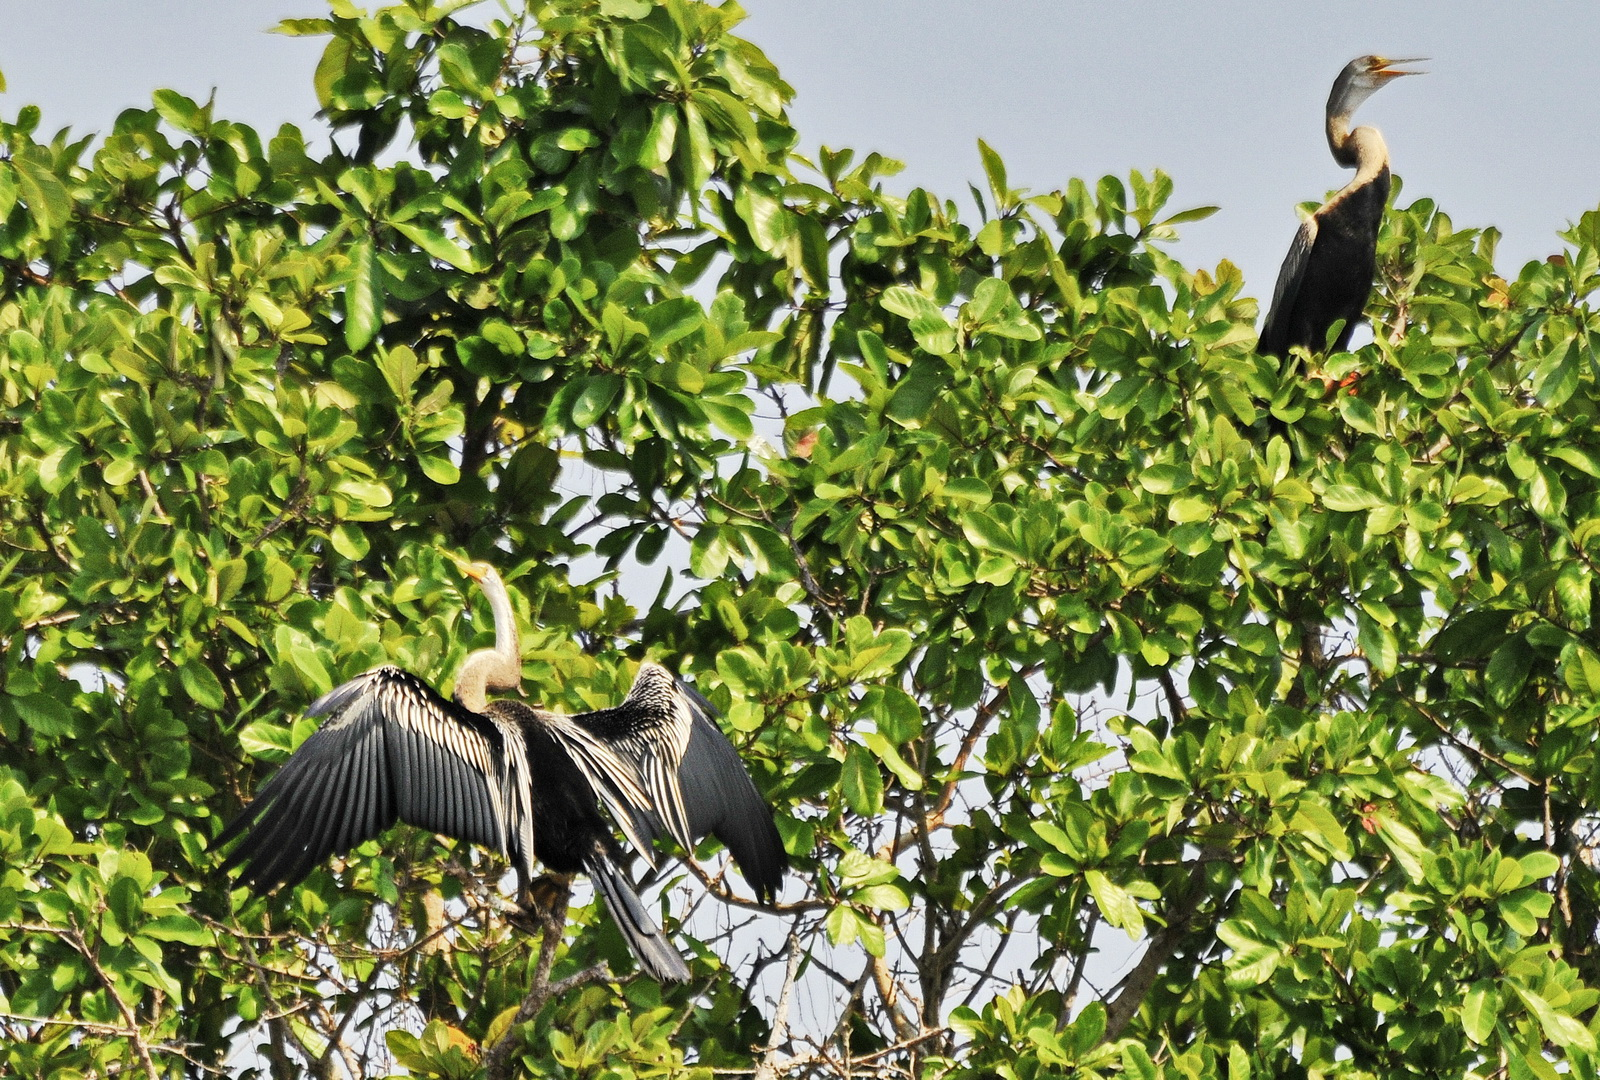 Part of the World's largest colony of Oriental darters at Prek Toal